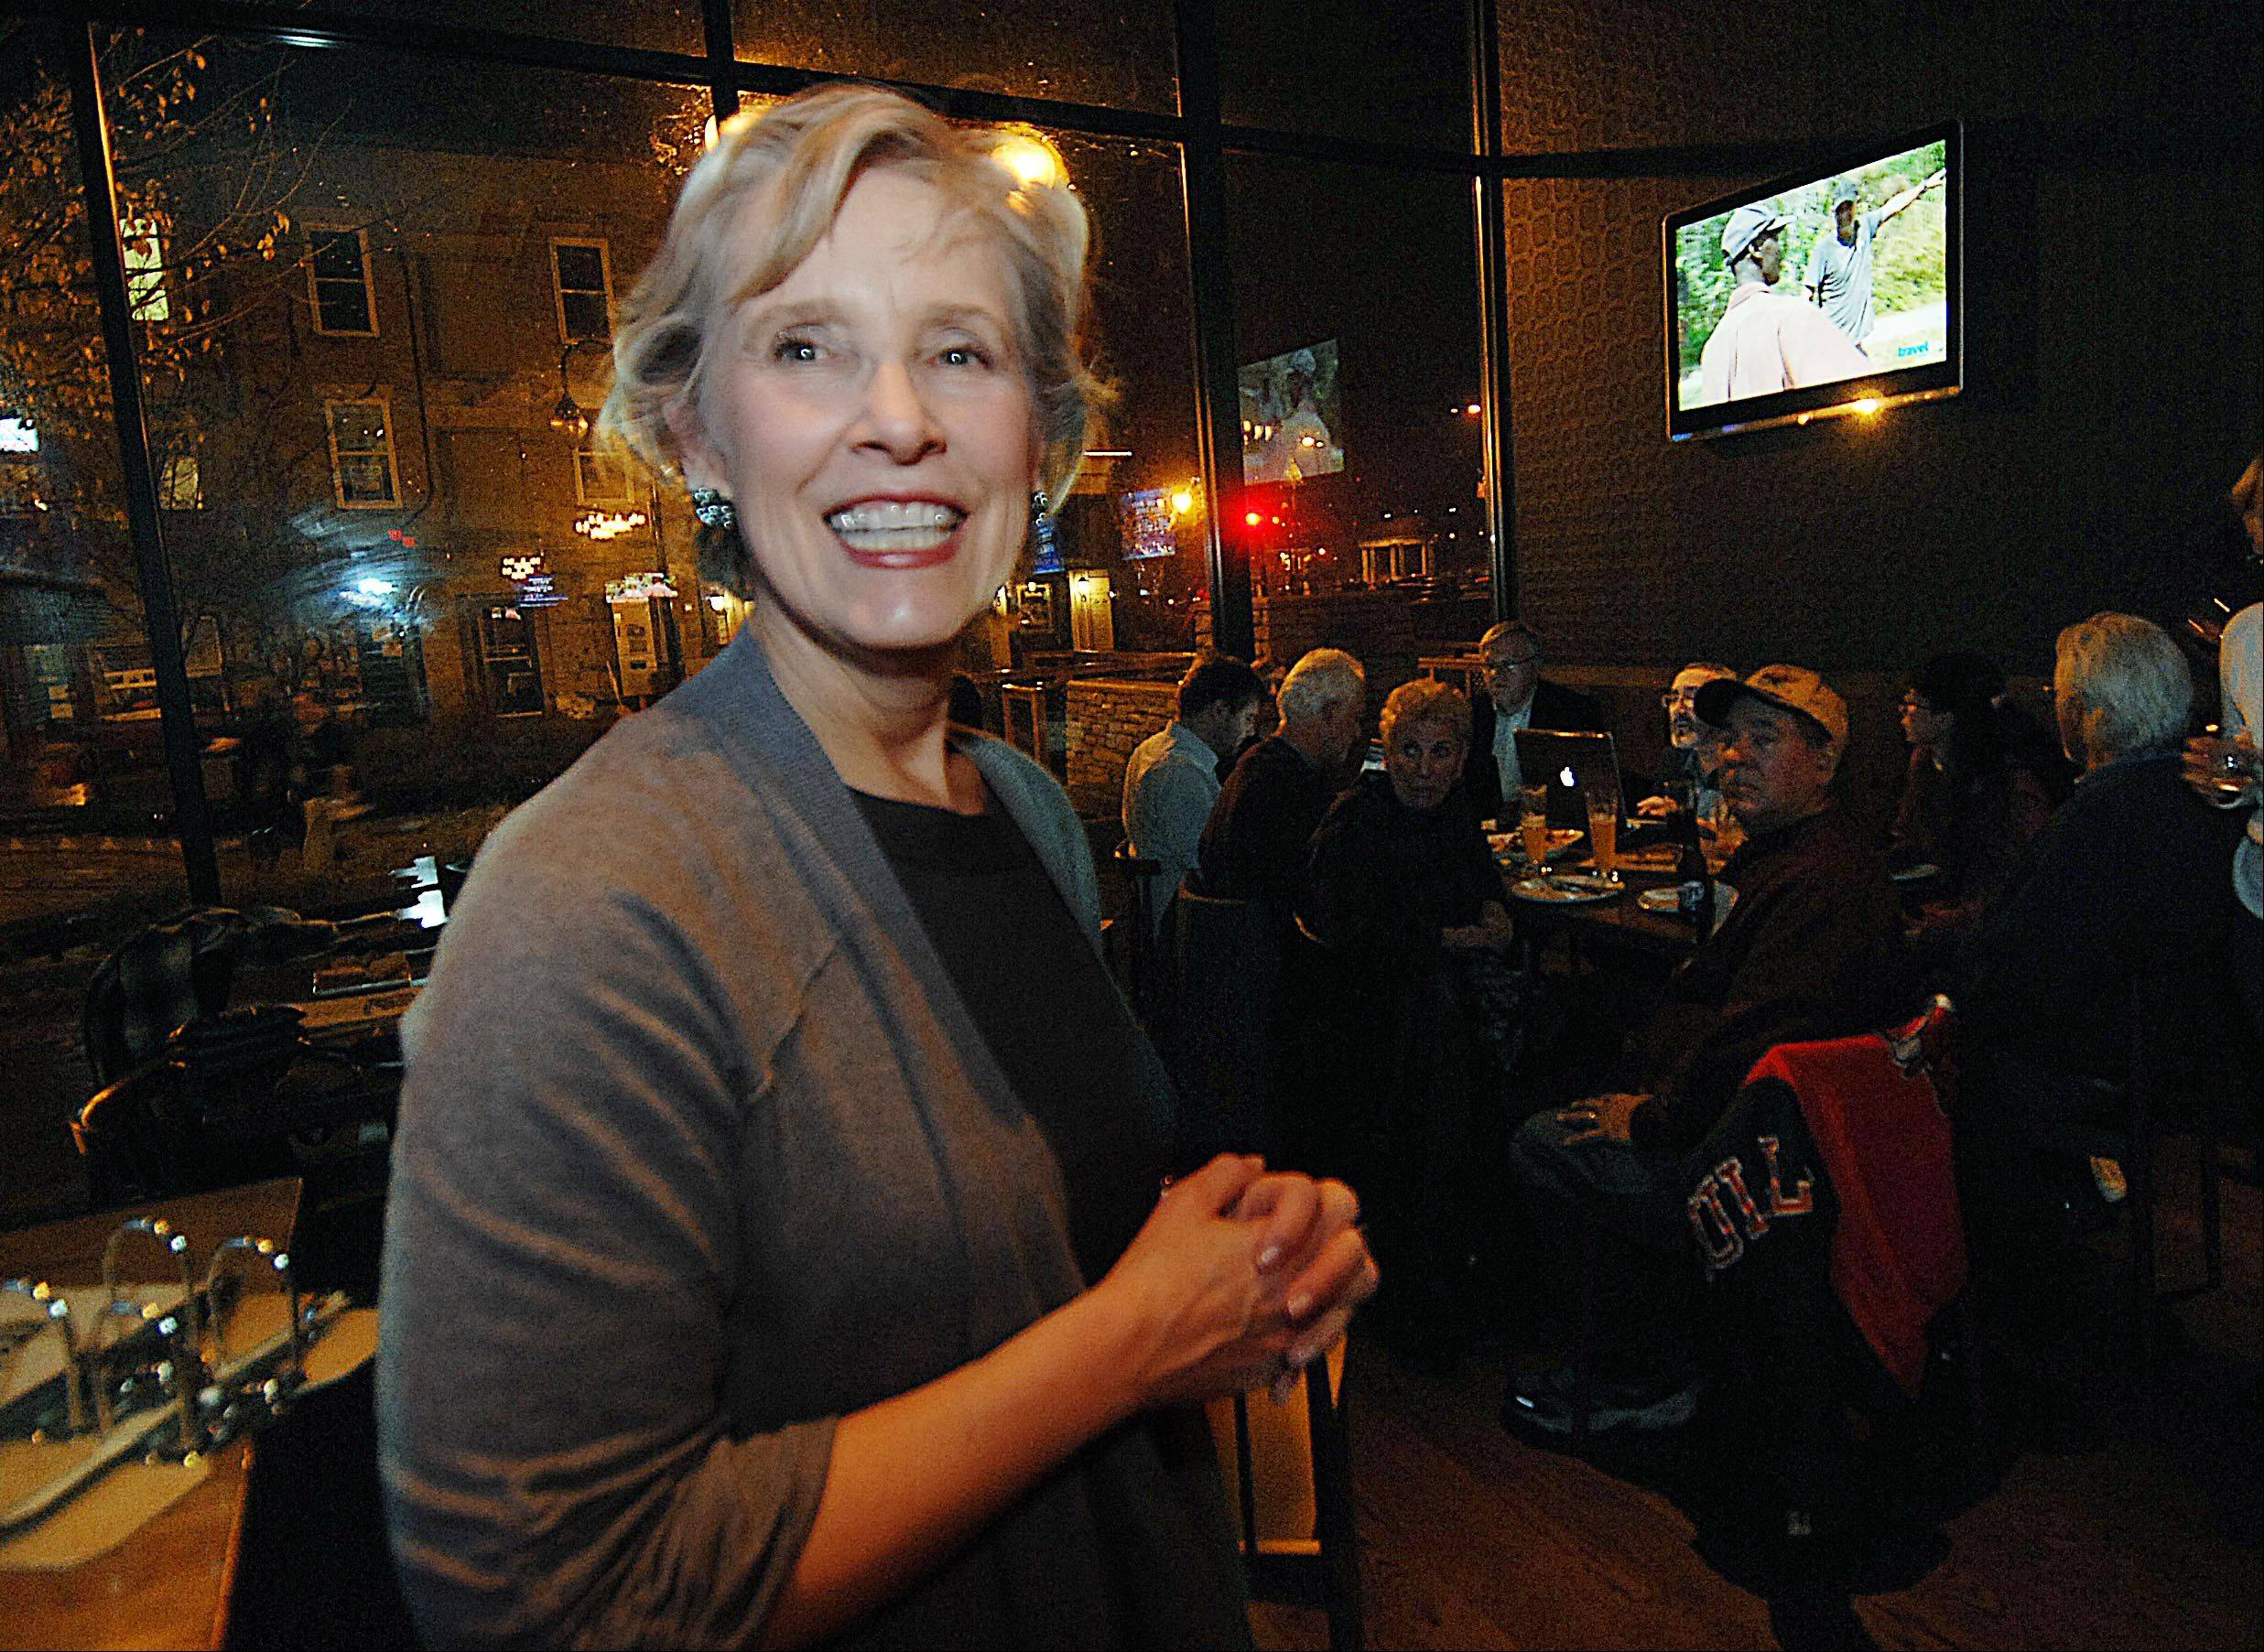 25th District Senate candidate Corinne Pierog attends an election night party at Wild Monk in St. Charles.